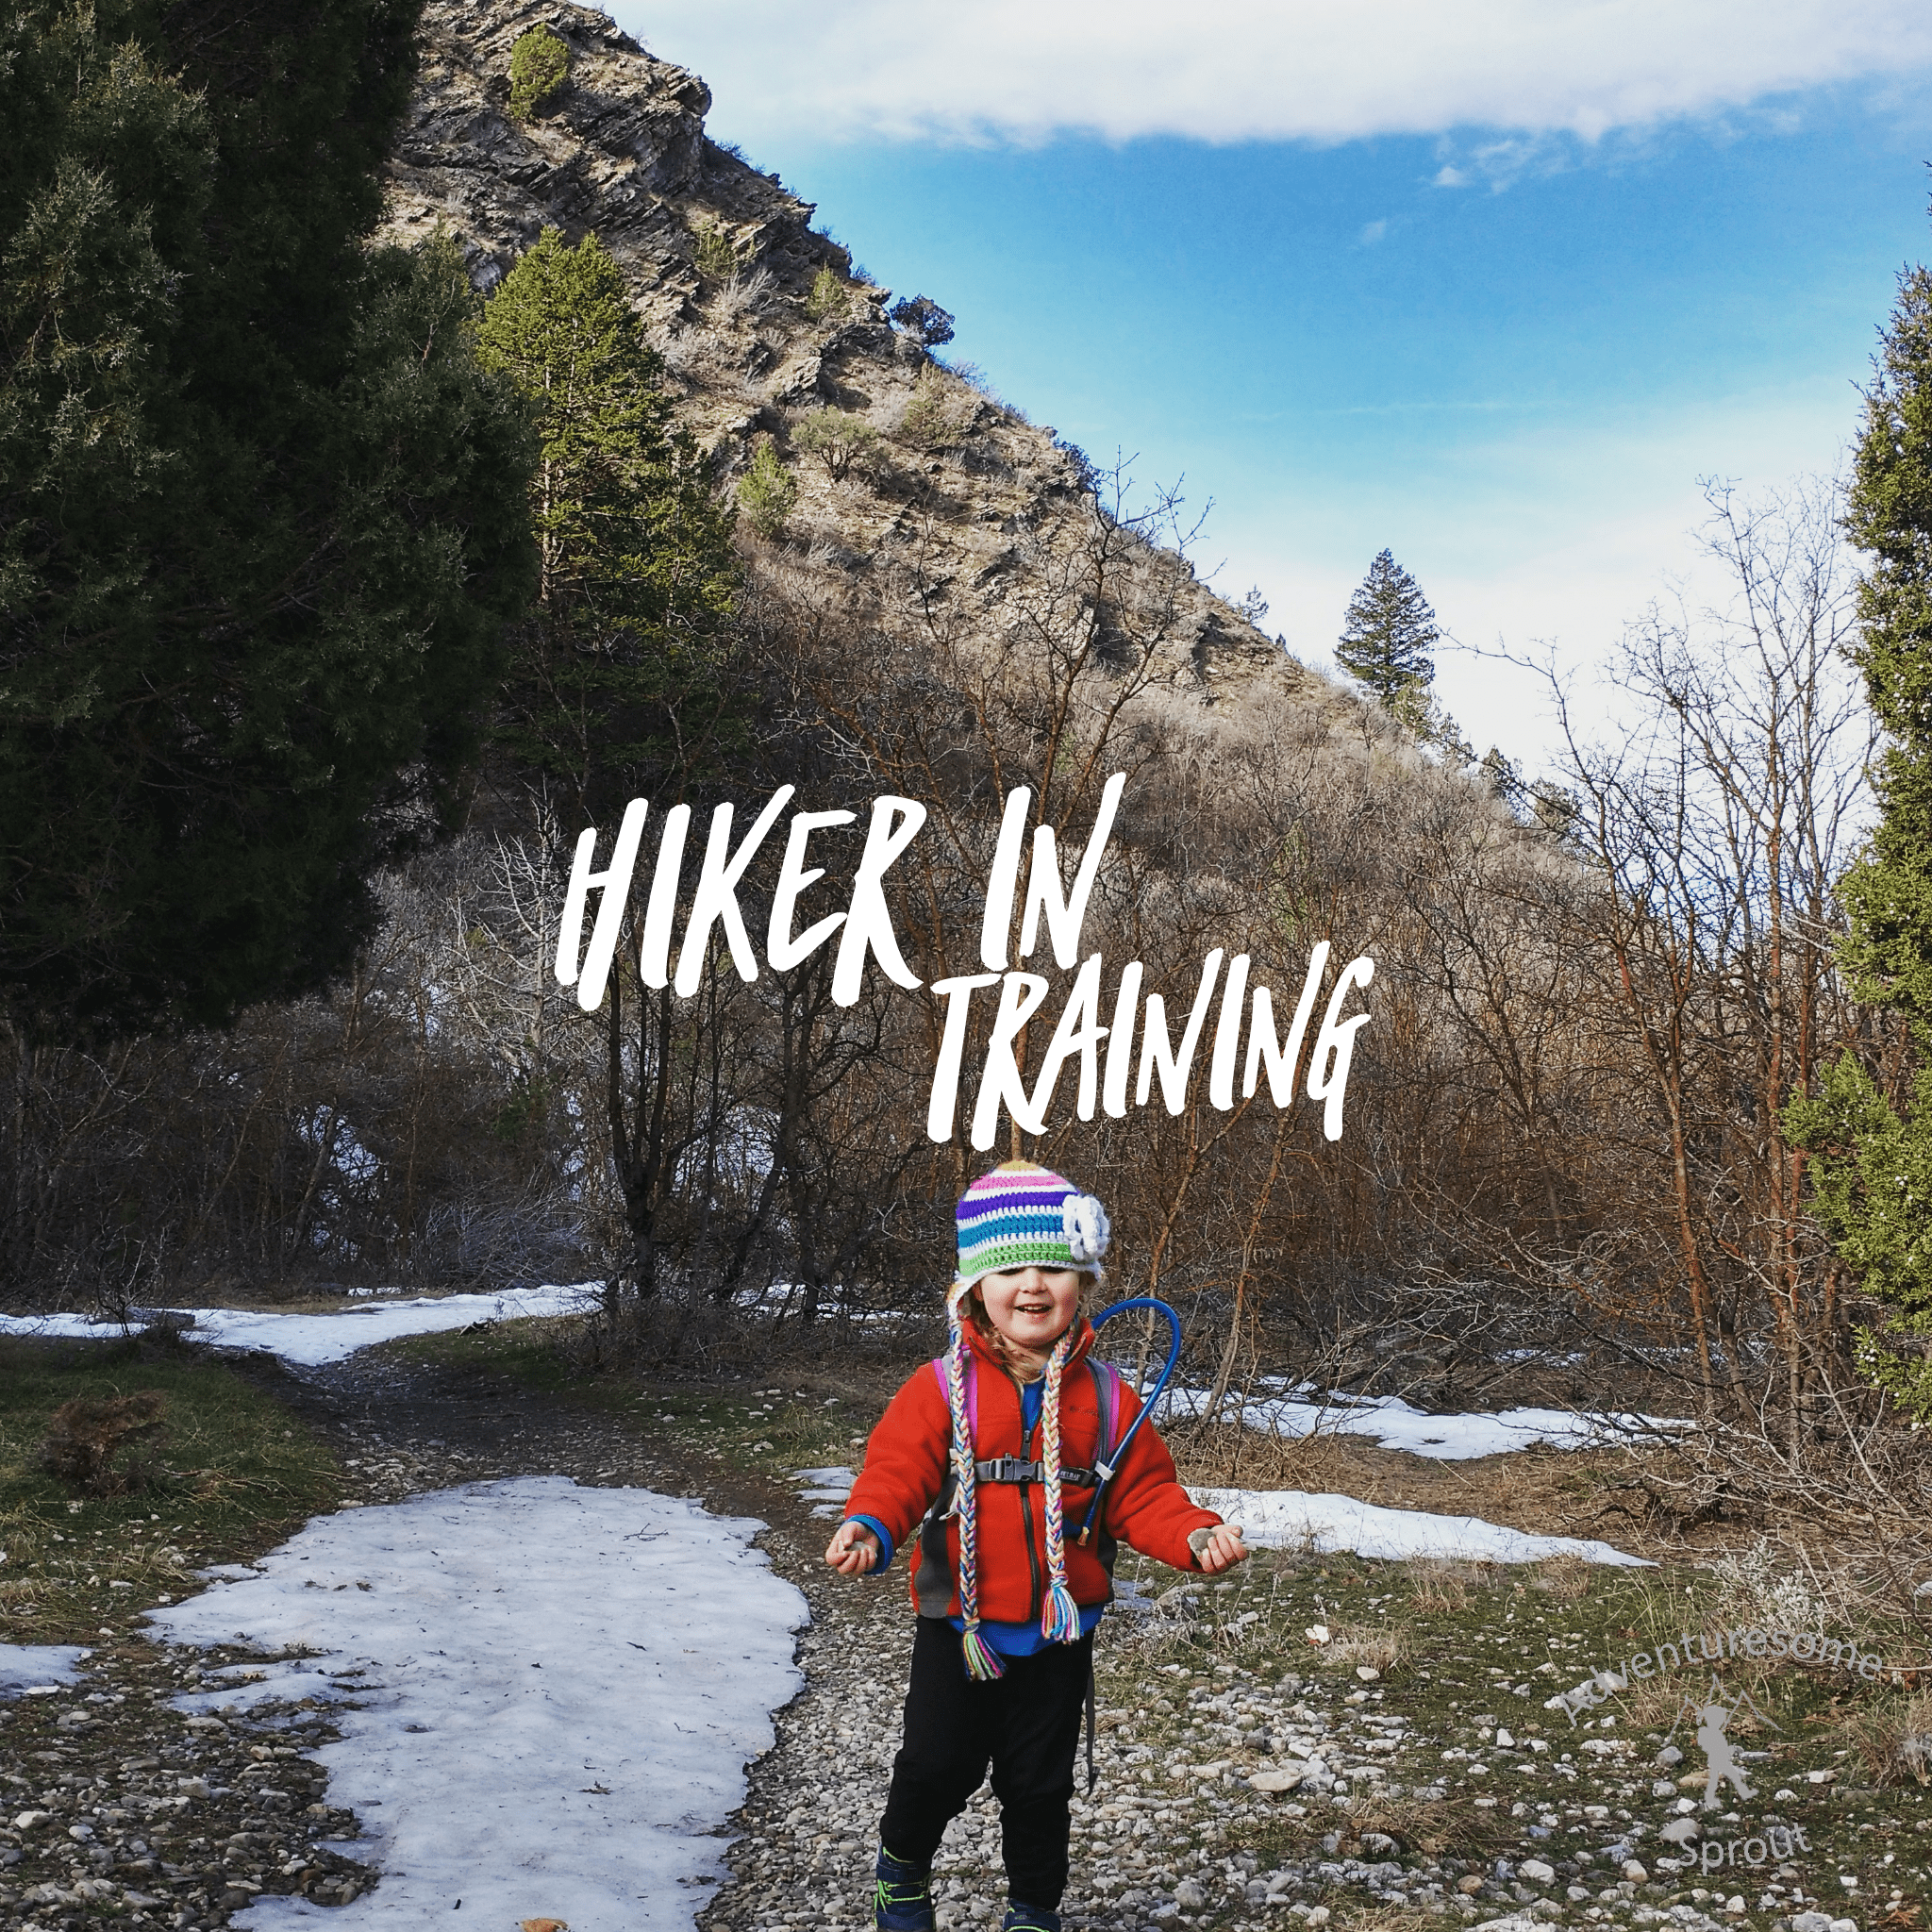 A new approach: Hiker in training